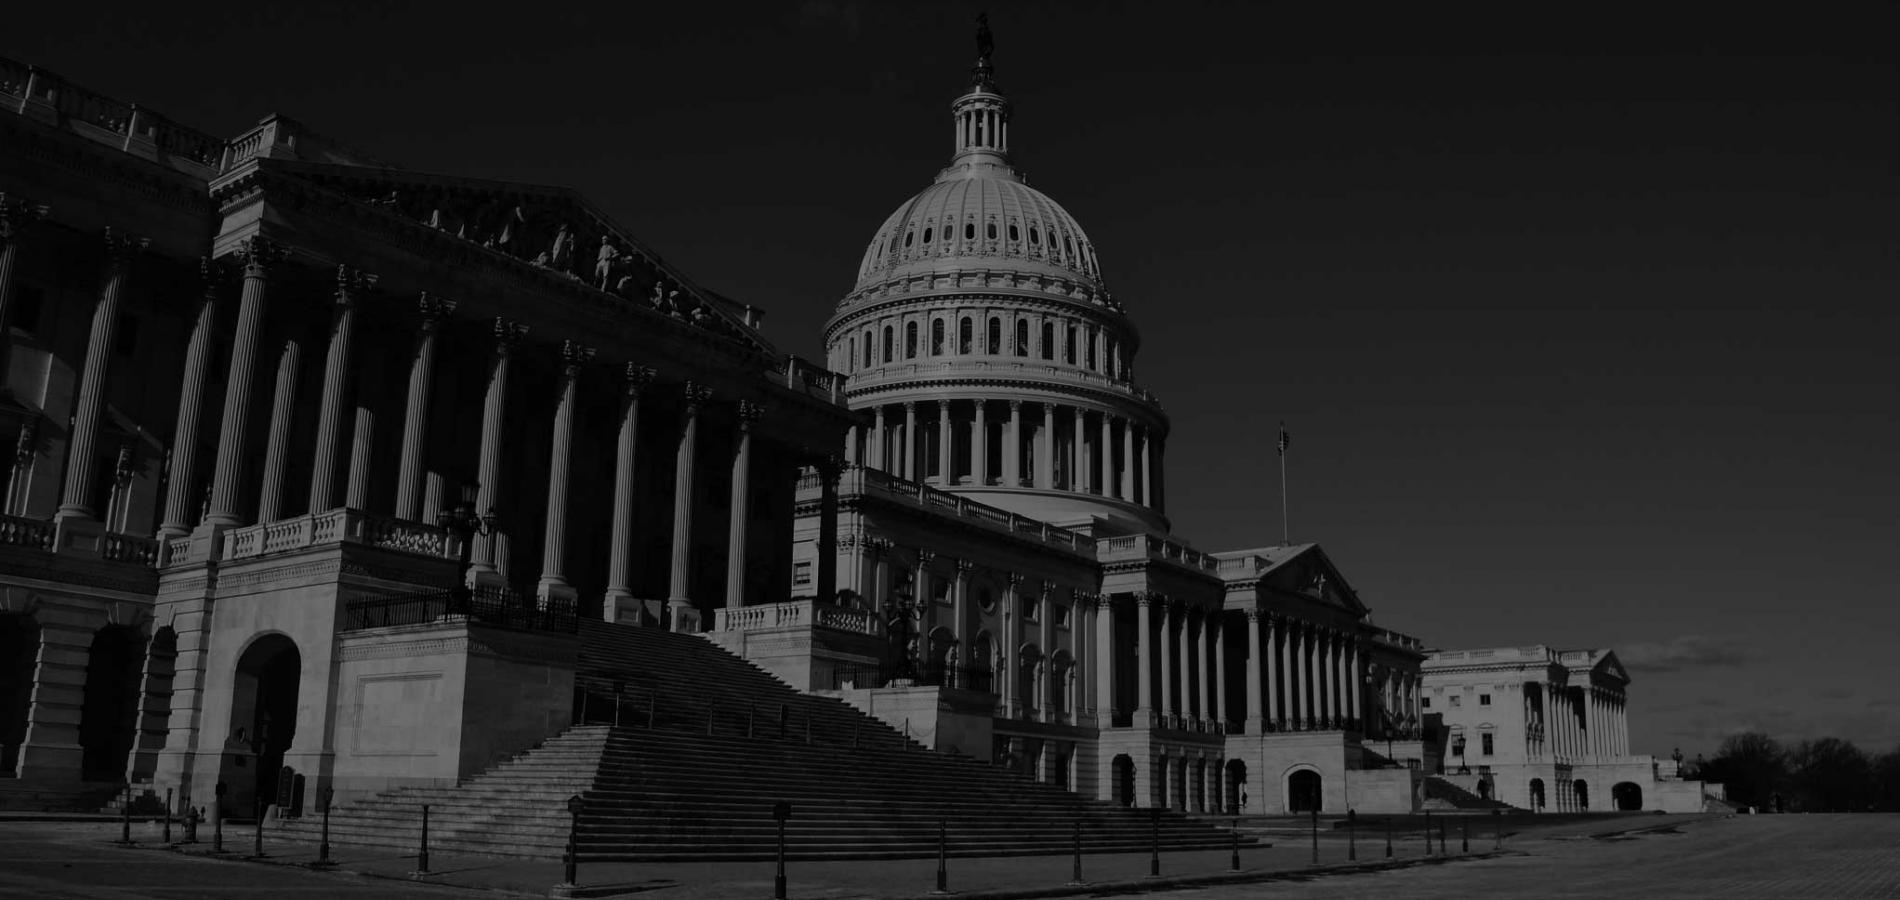 Black and white photo of the U.S. Capitol